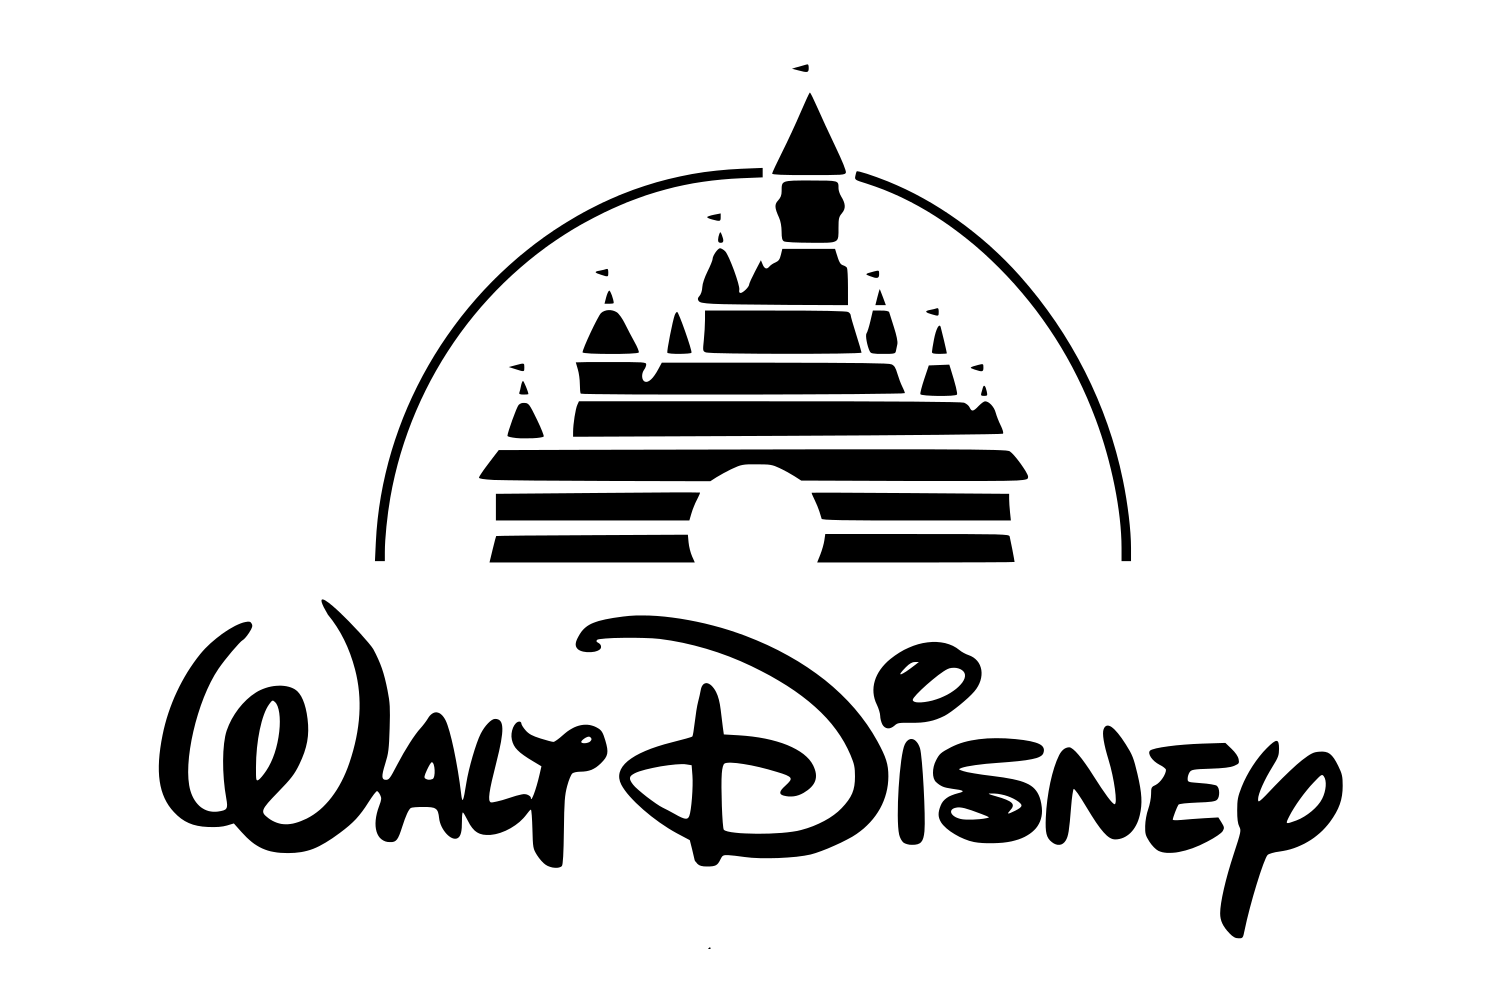 Digital Disney: Transforming the Happiest Place on Earth – Digital Innovation and Transformation